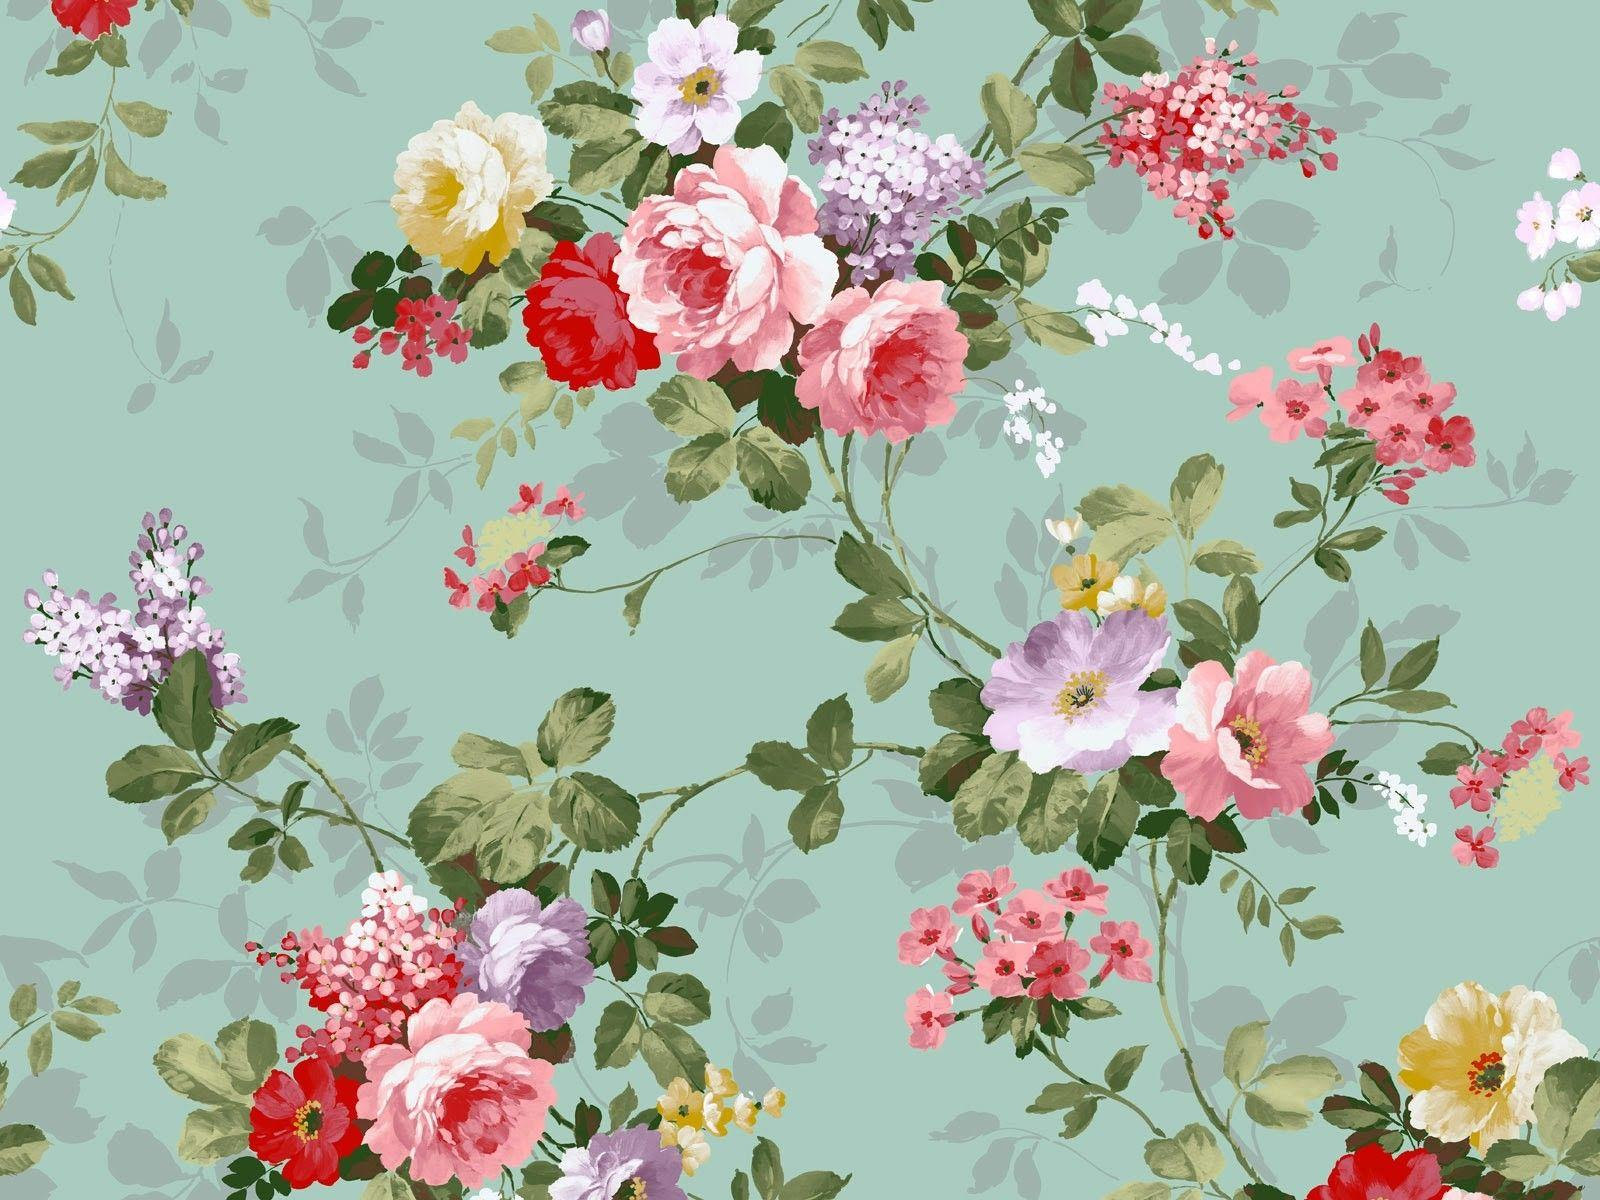 Floral Backgrounds HD - Wallpaper Cave